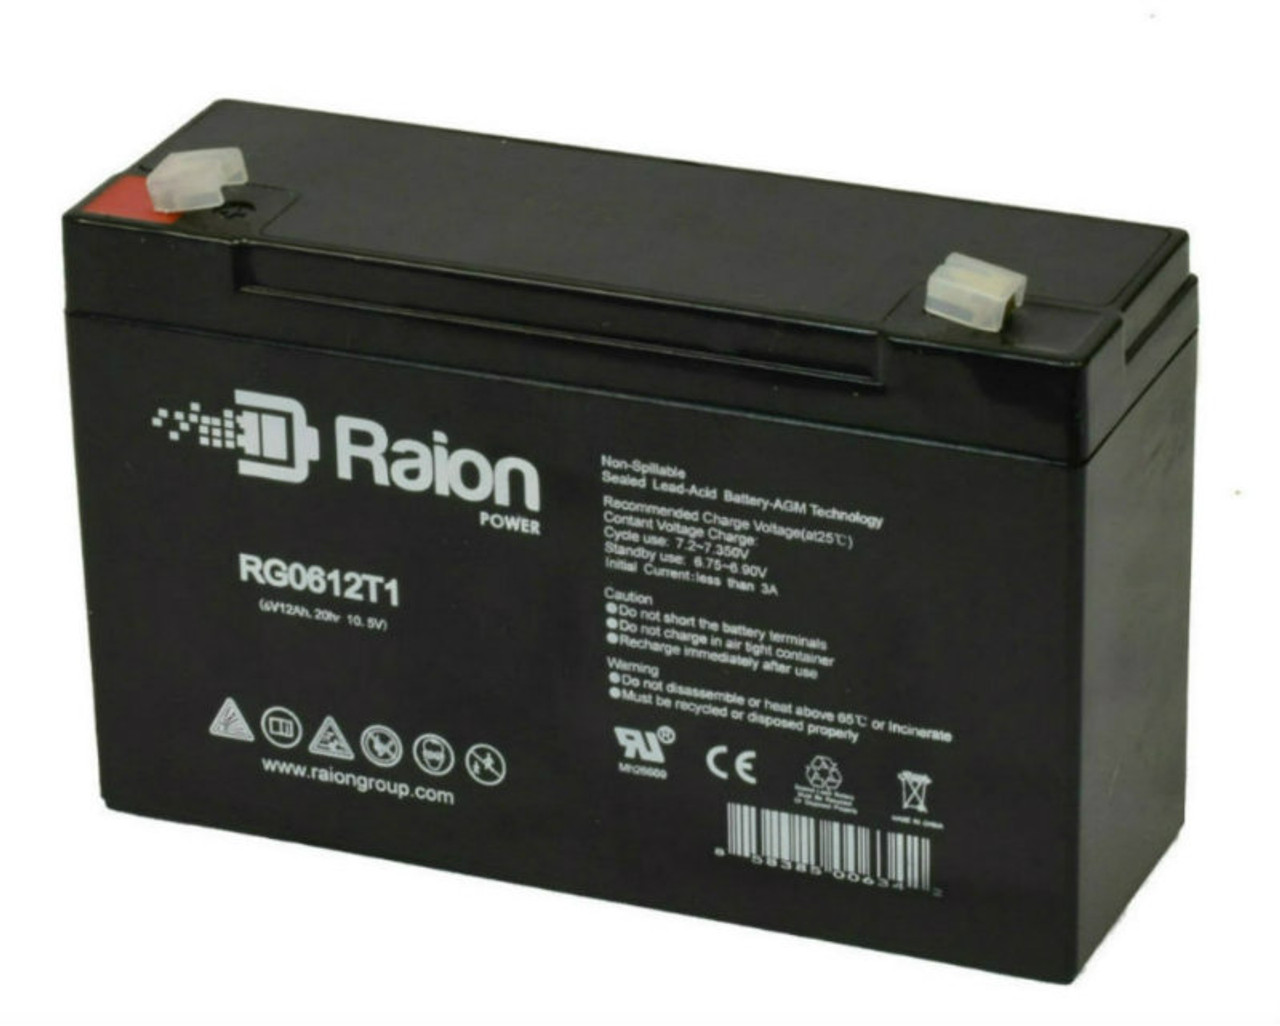 Raion Power RG06120T1 Replacement Battery Pack for Chloride 12A74TV2 emergency light